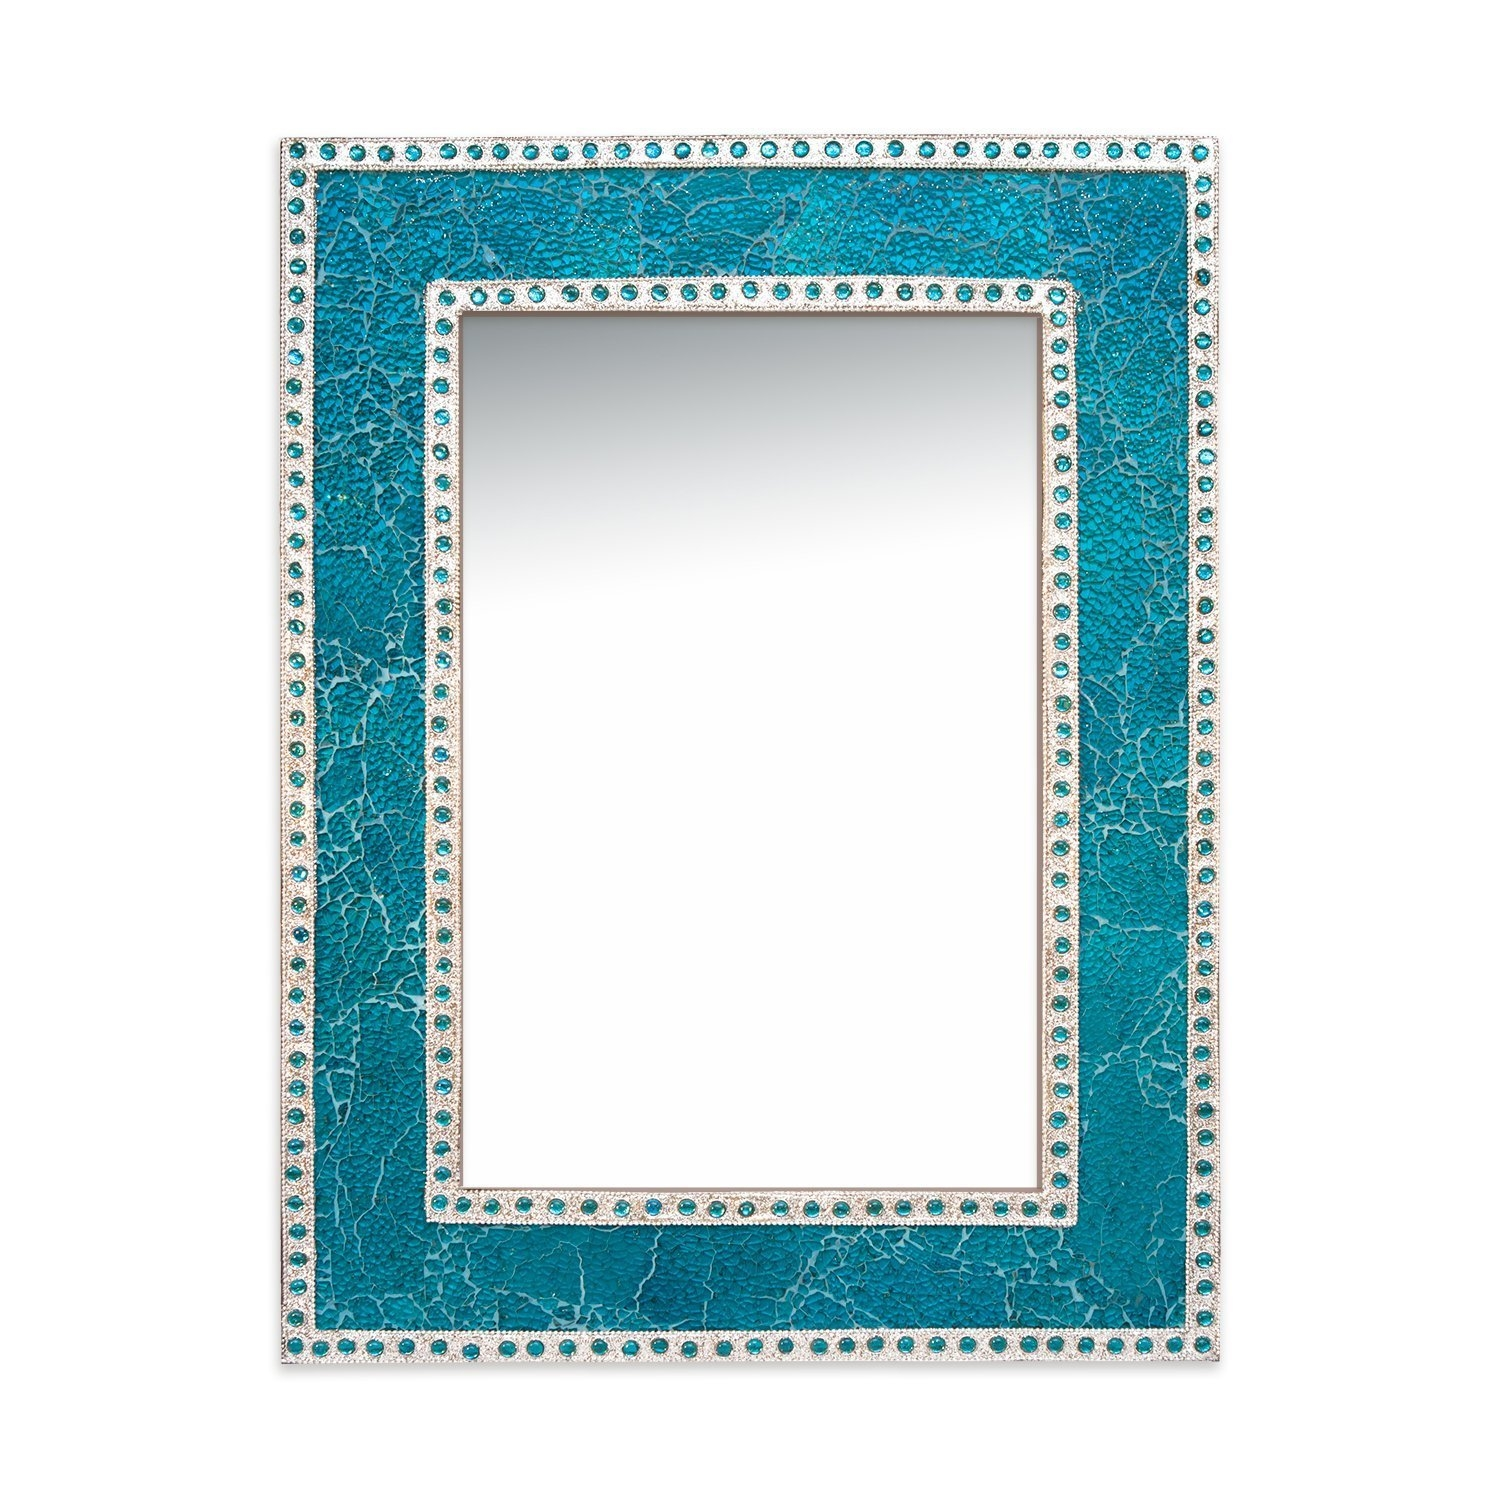 Decorshore Decorative Crackled Glass Mosaic Wall Mirror Reviews With Mosaic Wall Mirrors (Image 5 of 15)